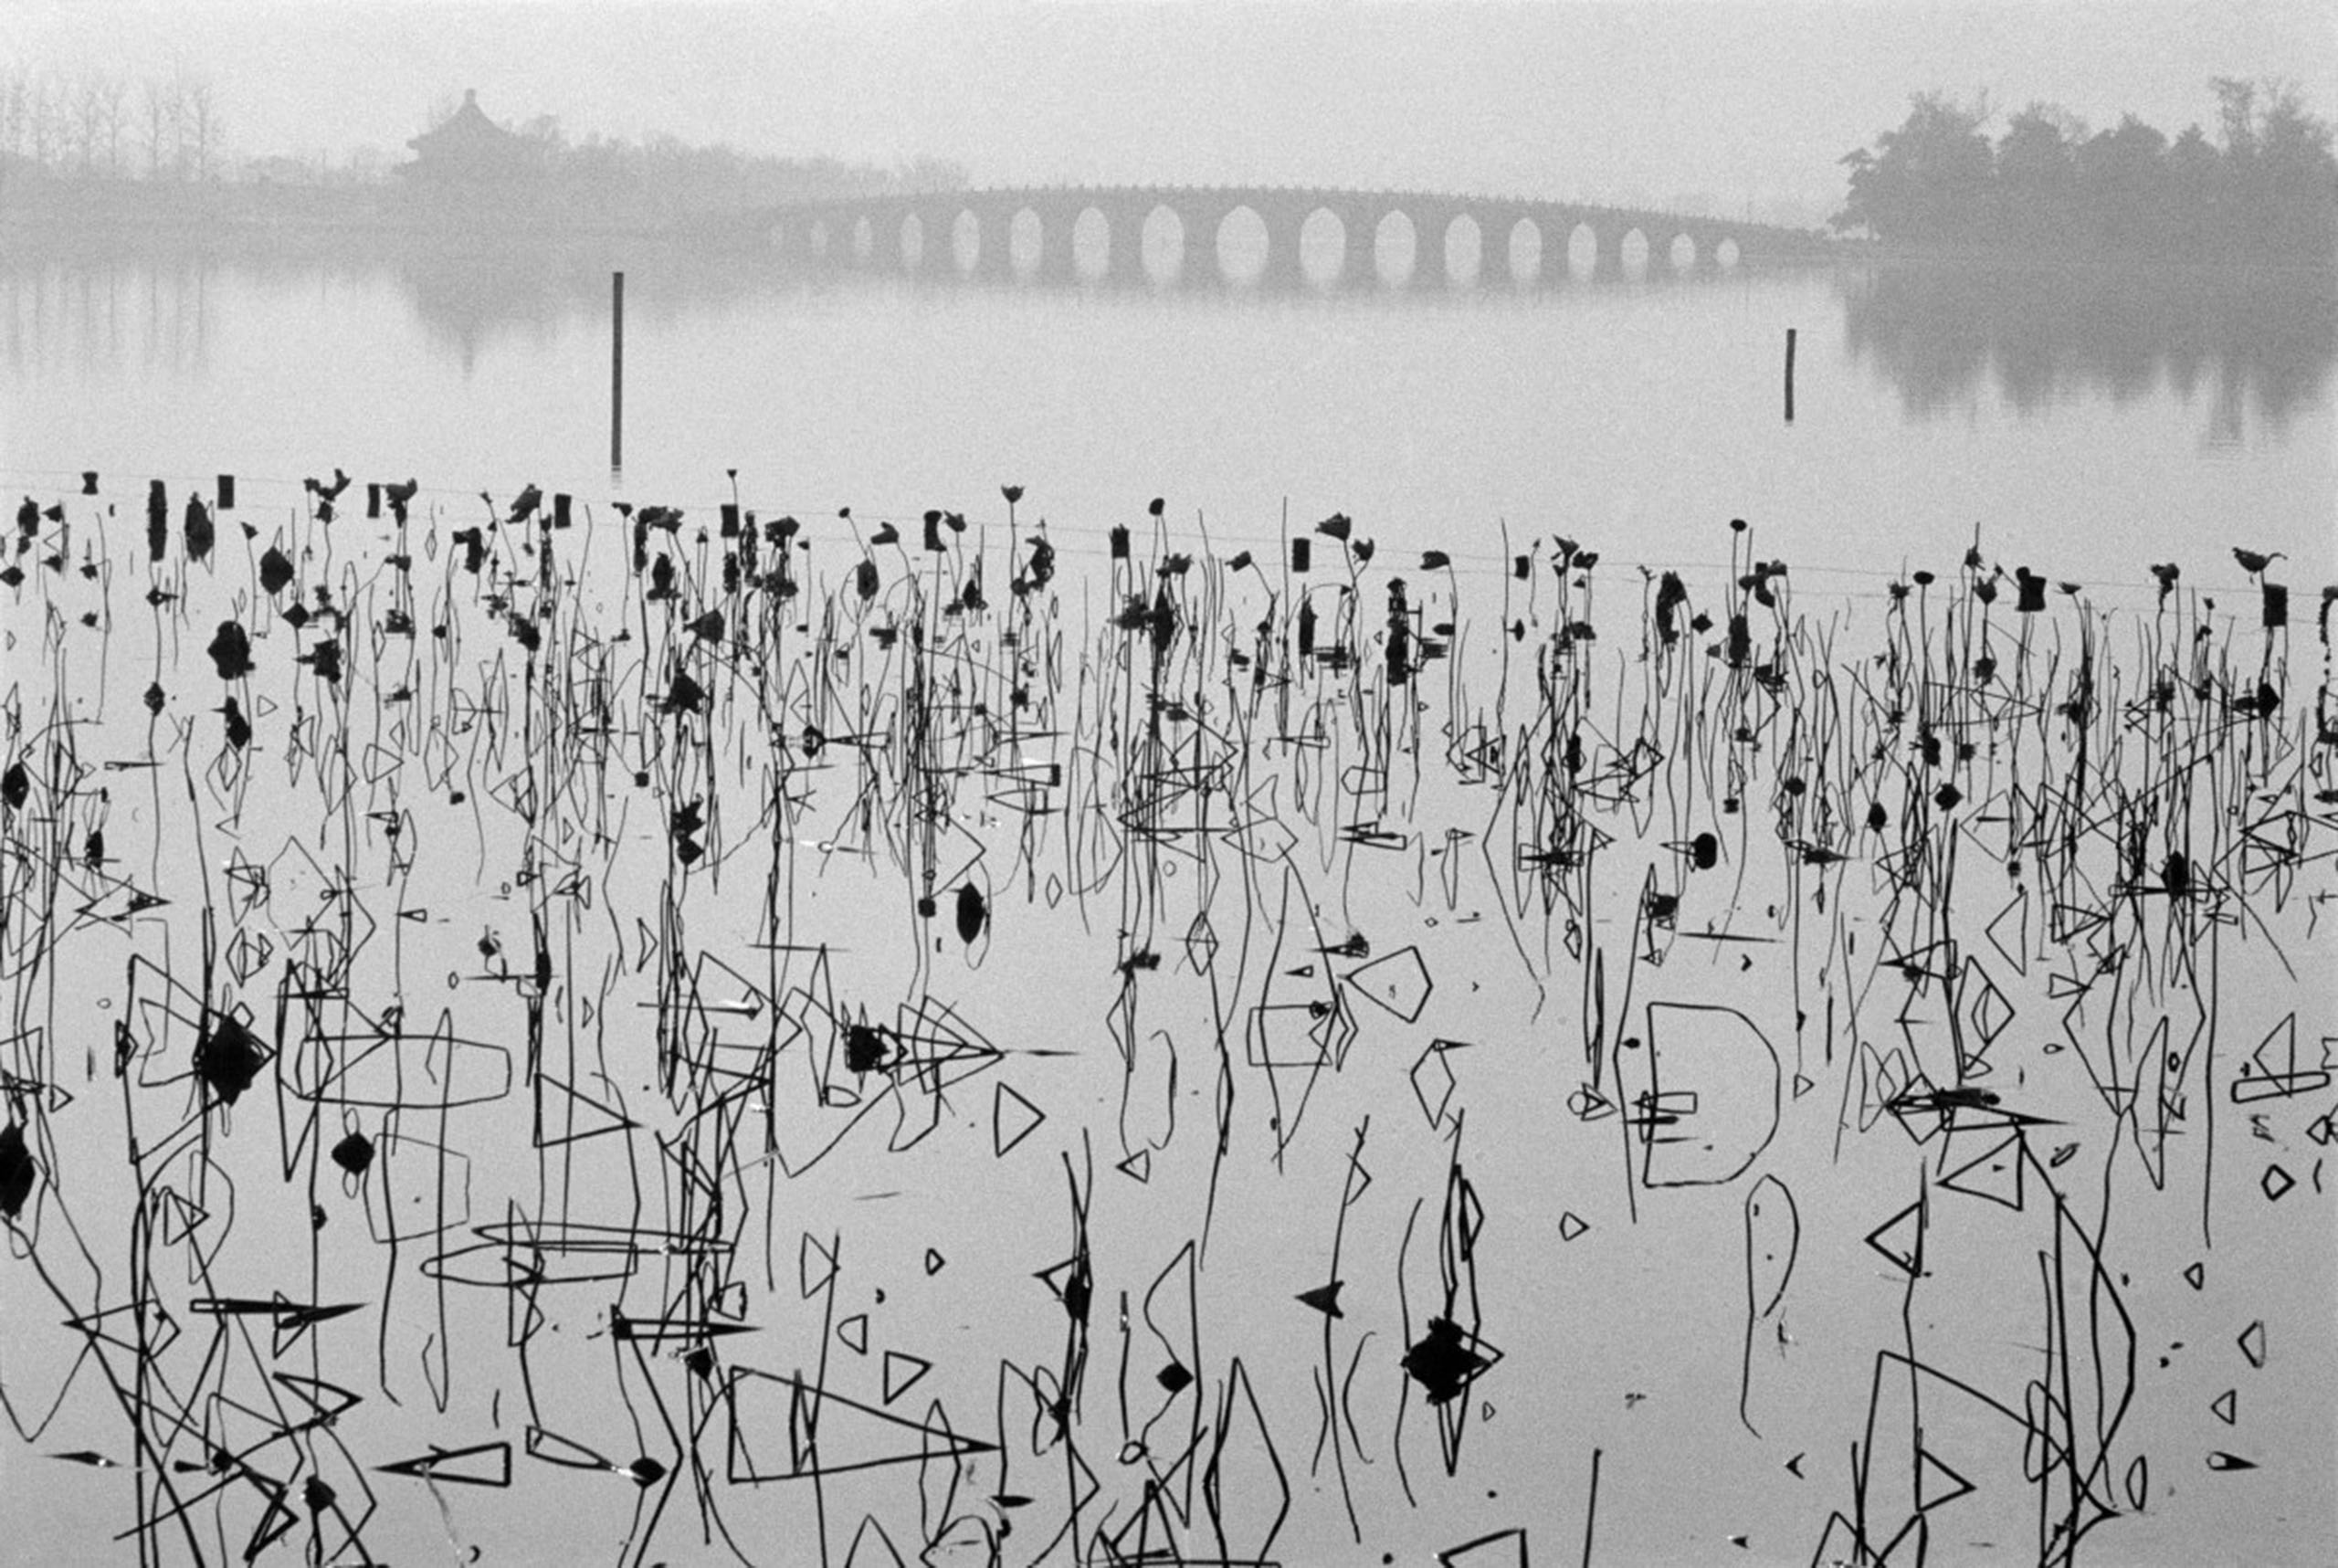 Dead lotus flowers on Kunming Lake at the former Summer Palace, Beijing. 1964.